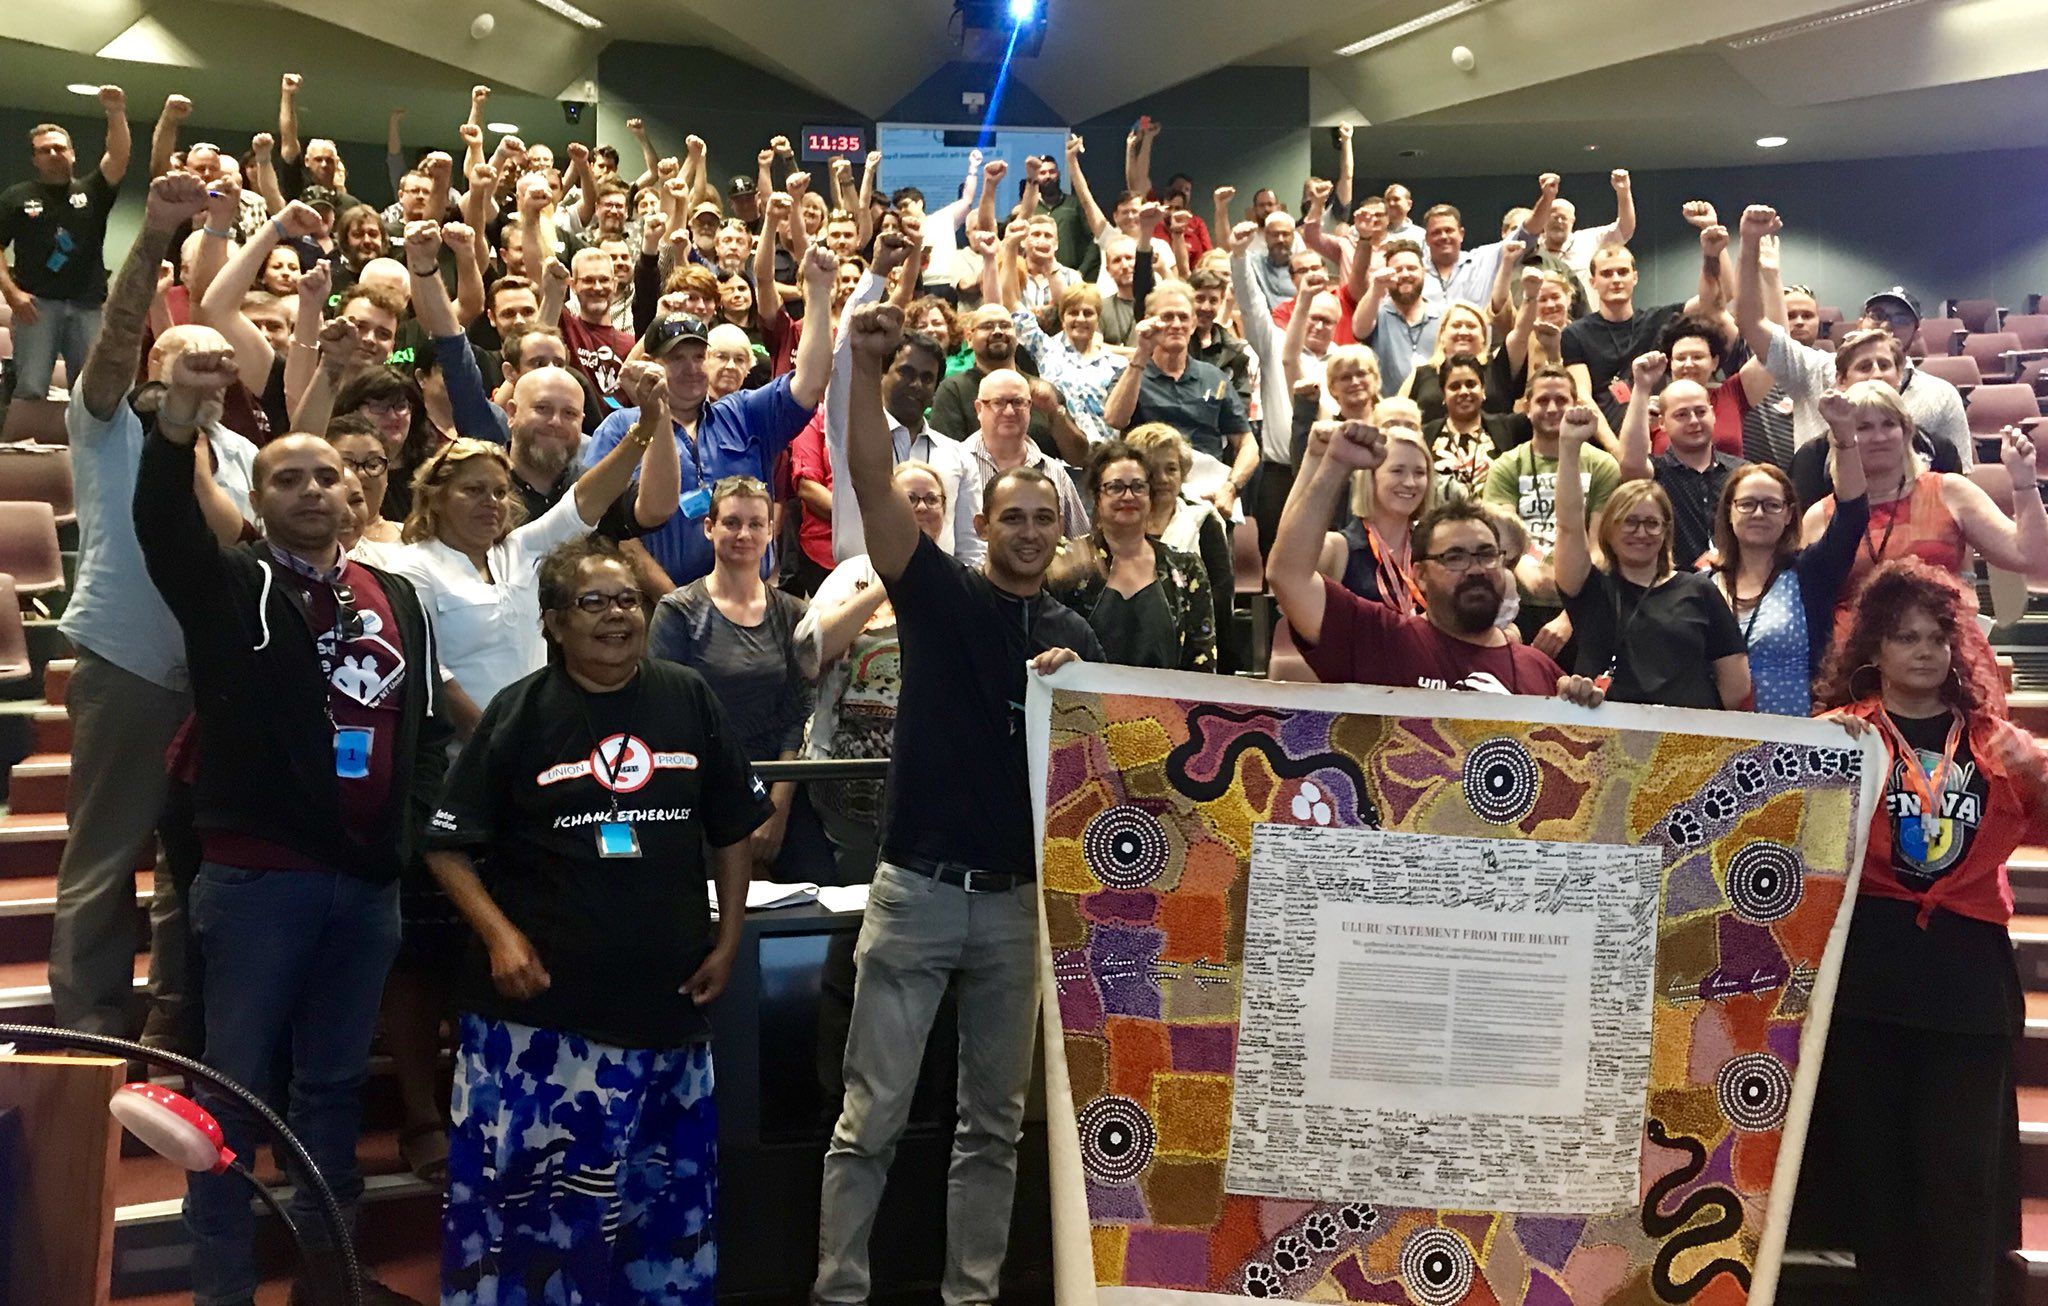 The NT Branch of the ALP has resolved to support the Uluru Statement today at conference. The resolution refers to the Territory Power in the Constitution, and how a constitutionally enshrined Voice is vital to the First Nations in the NT as they embark on treaty talks. #auspol https://t.co/F8hTnchFdh